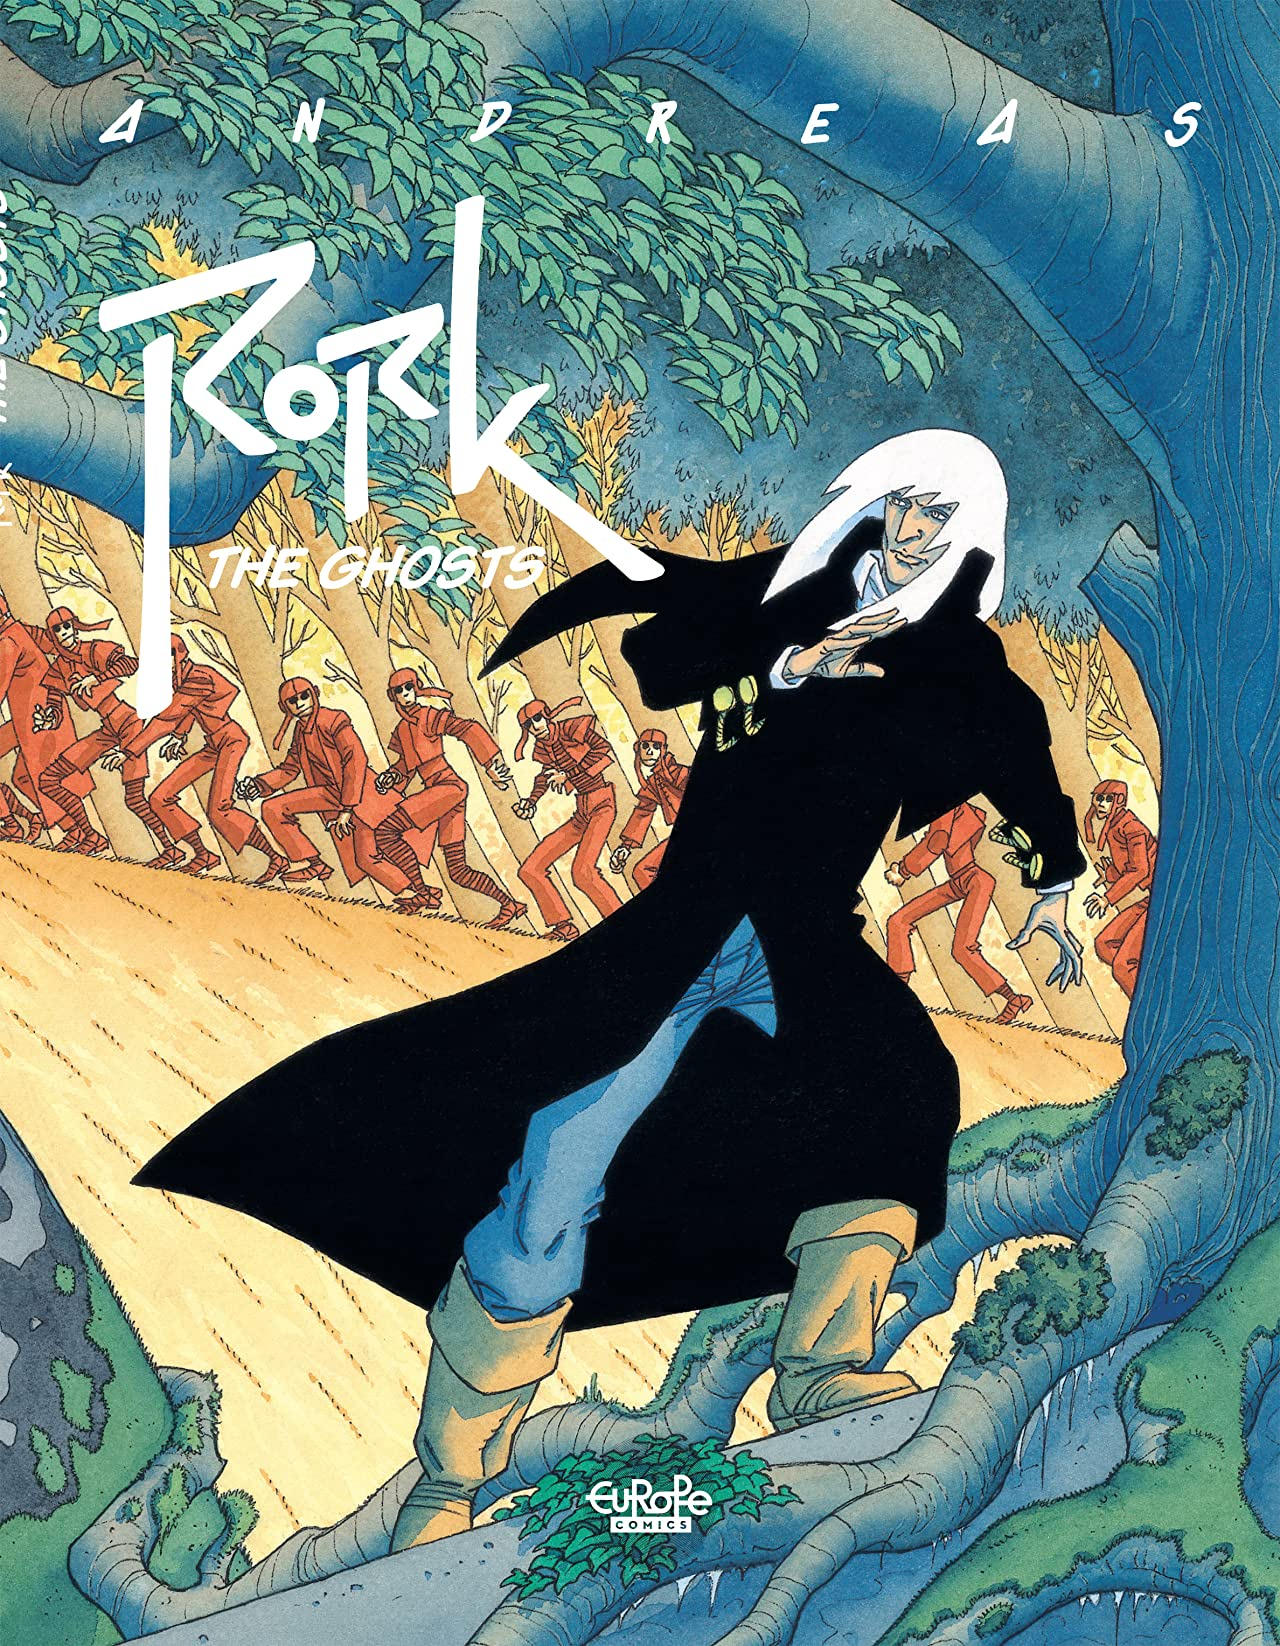 Rork: The Ghosts